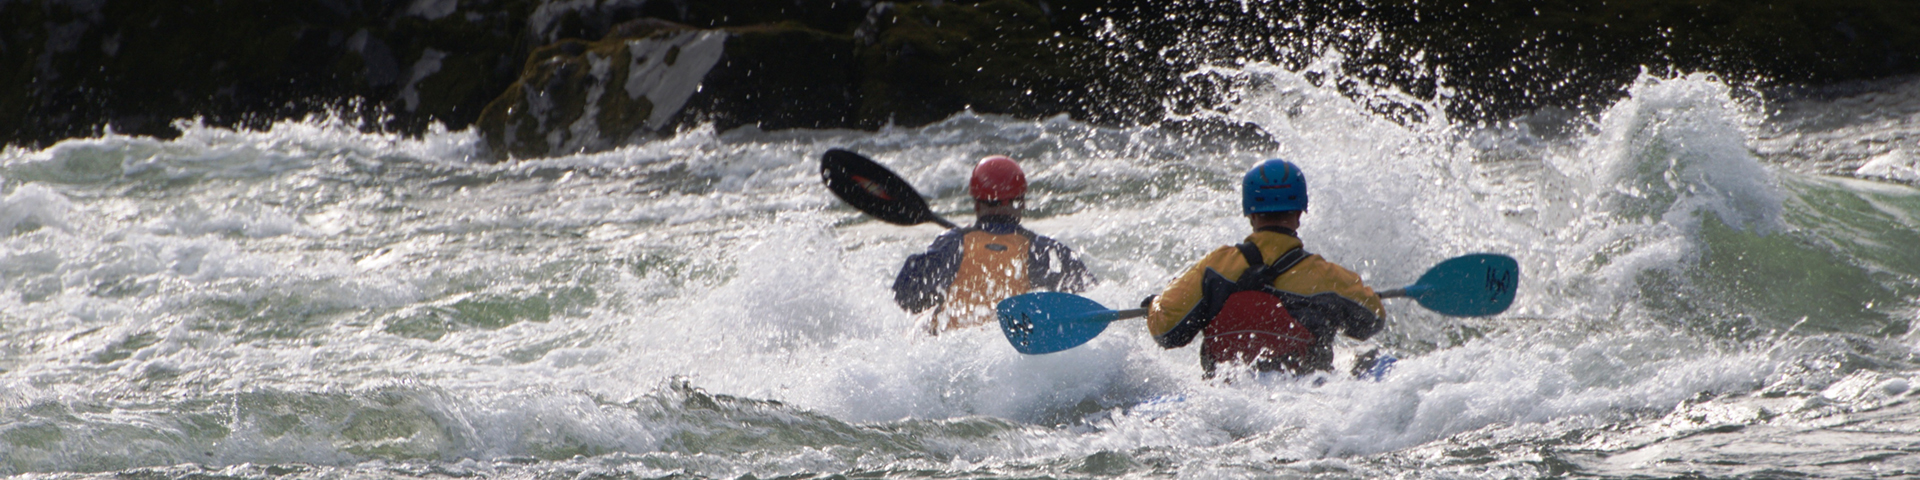 RIVER SAFETY AND RESCUE by Aquabatics - Image 406